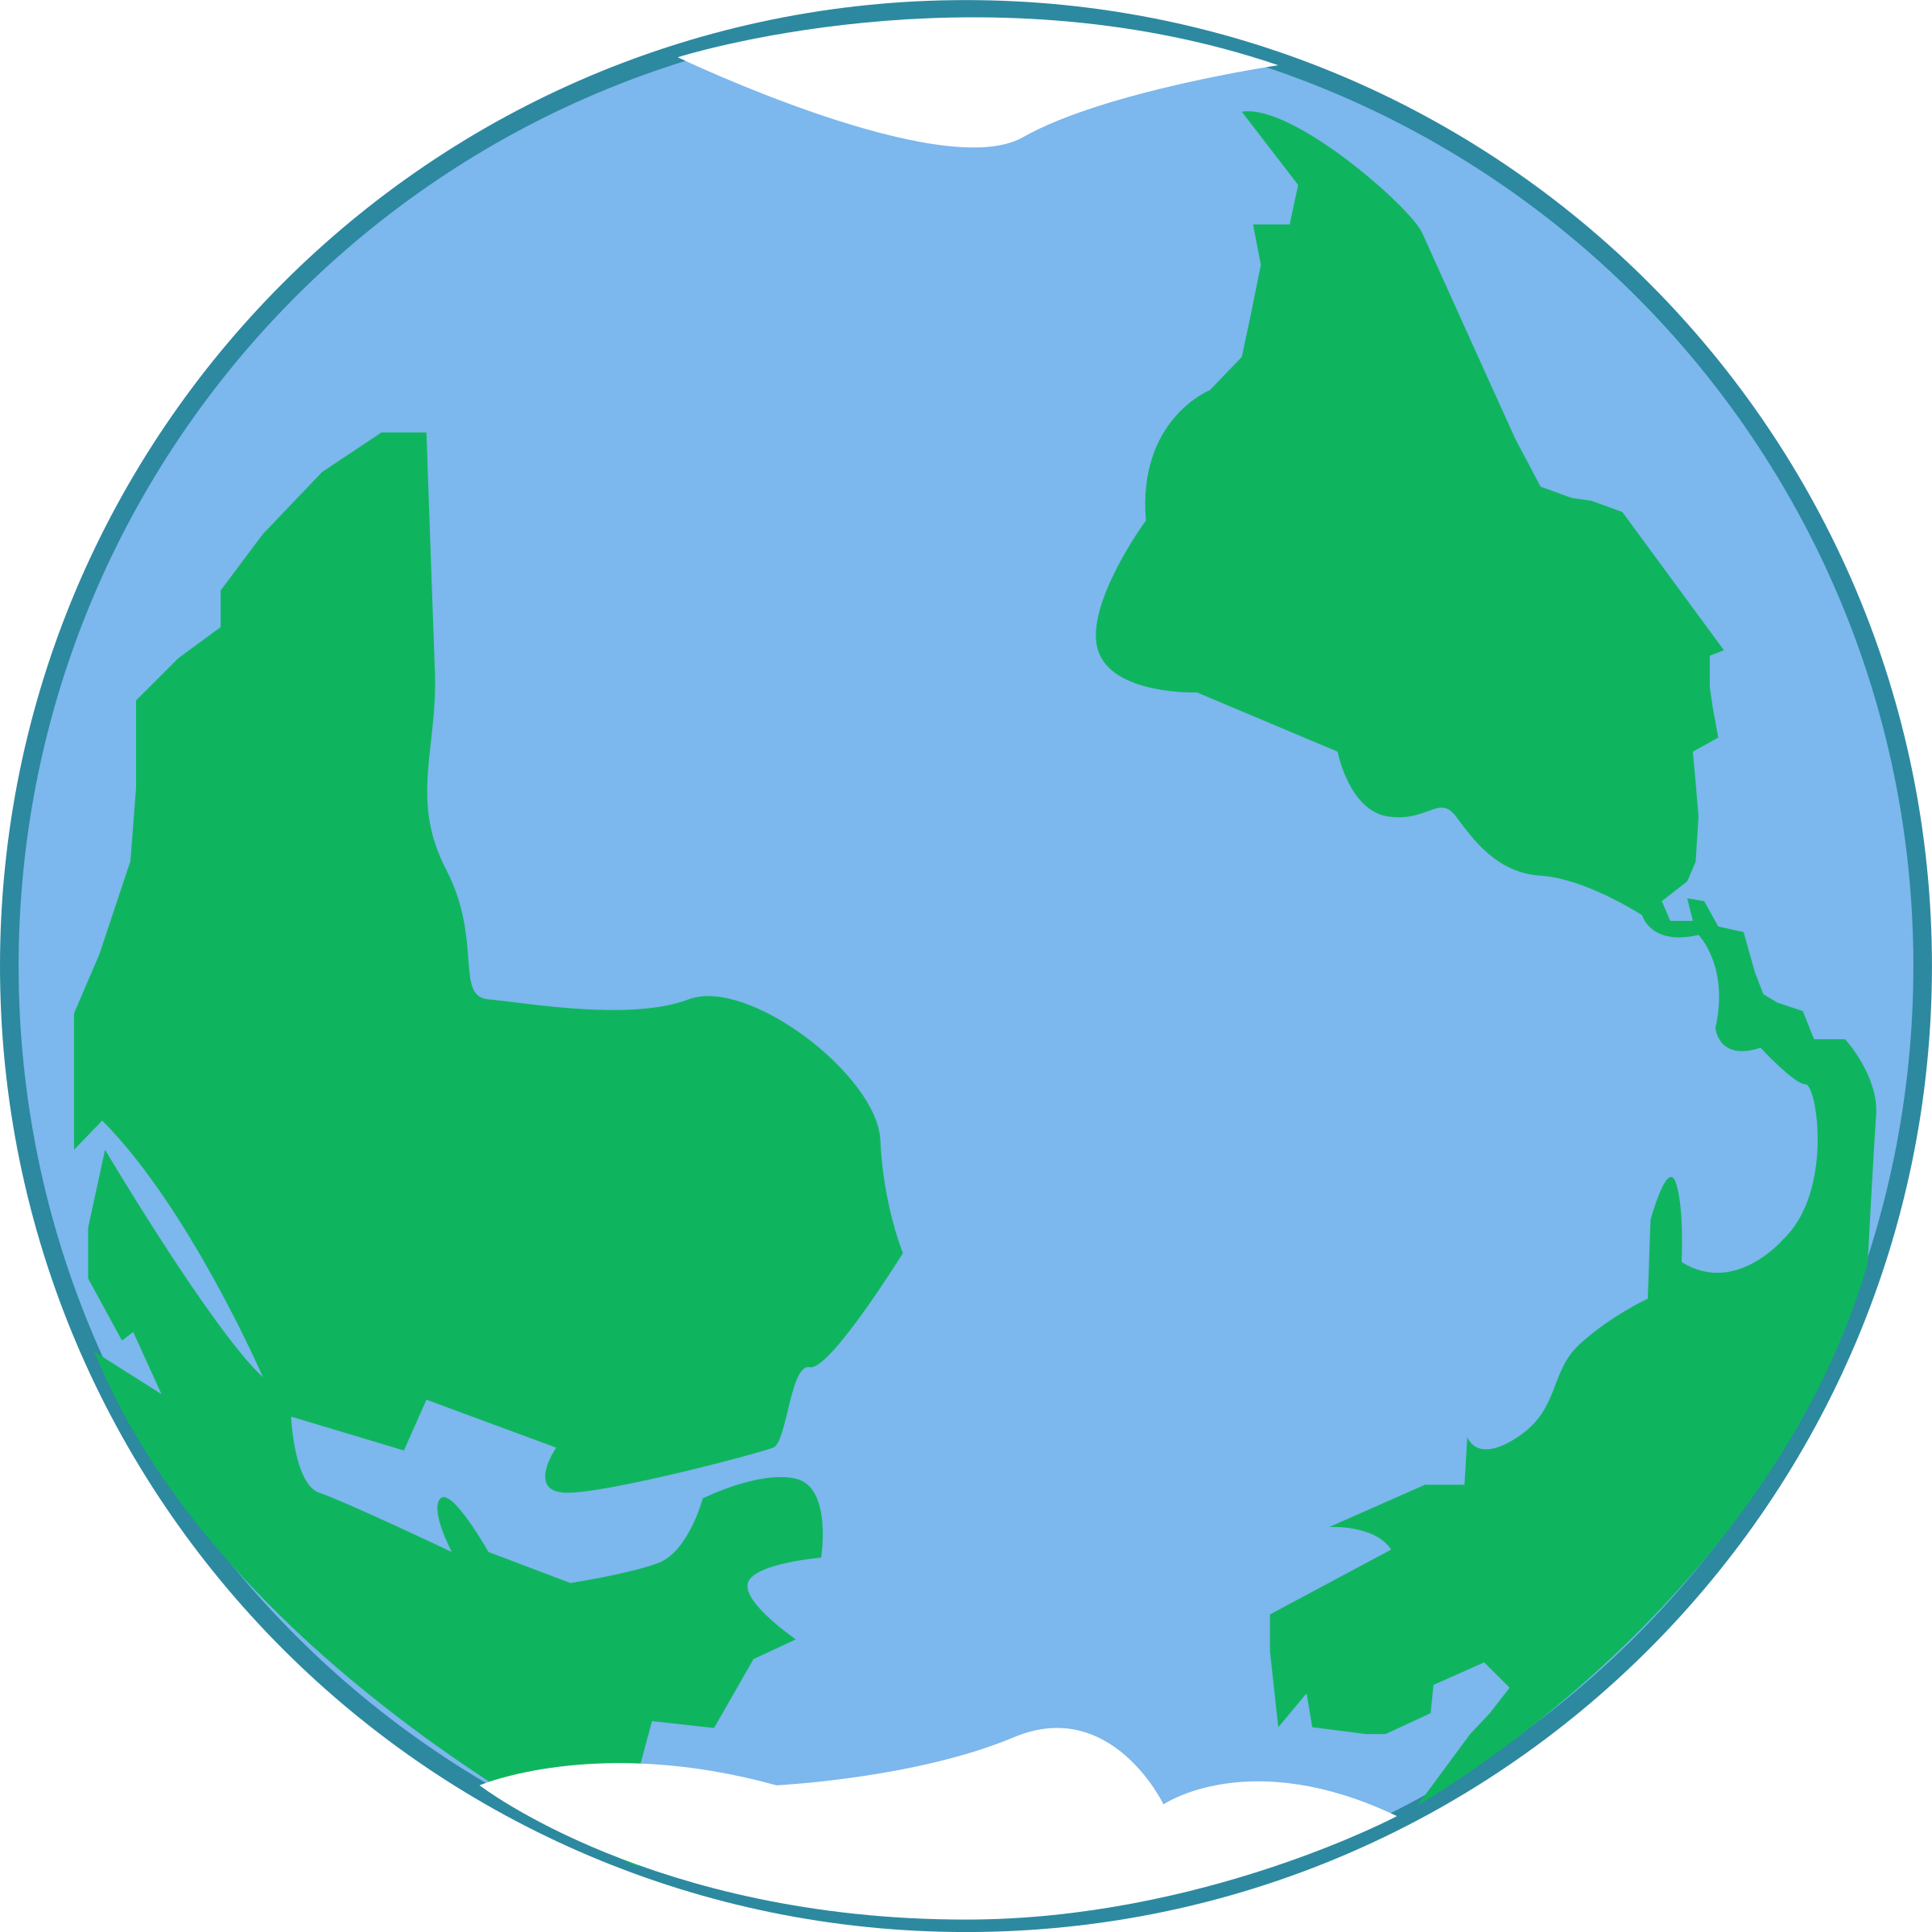 Globe clipart planet earth. Cartoon at getdrawings com